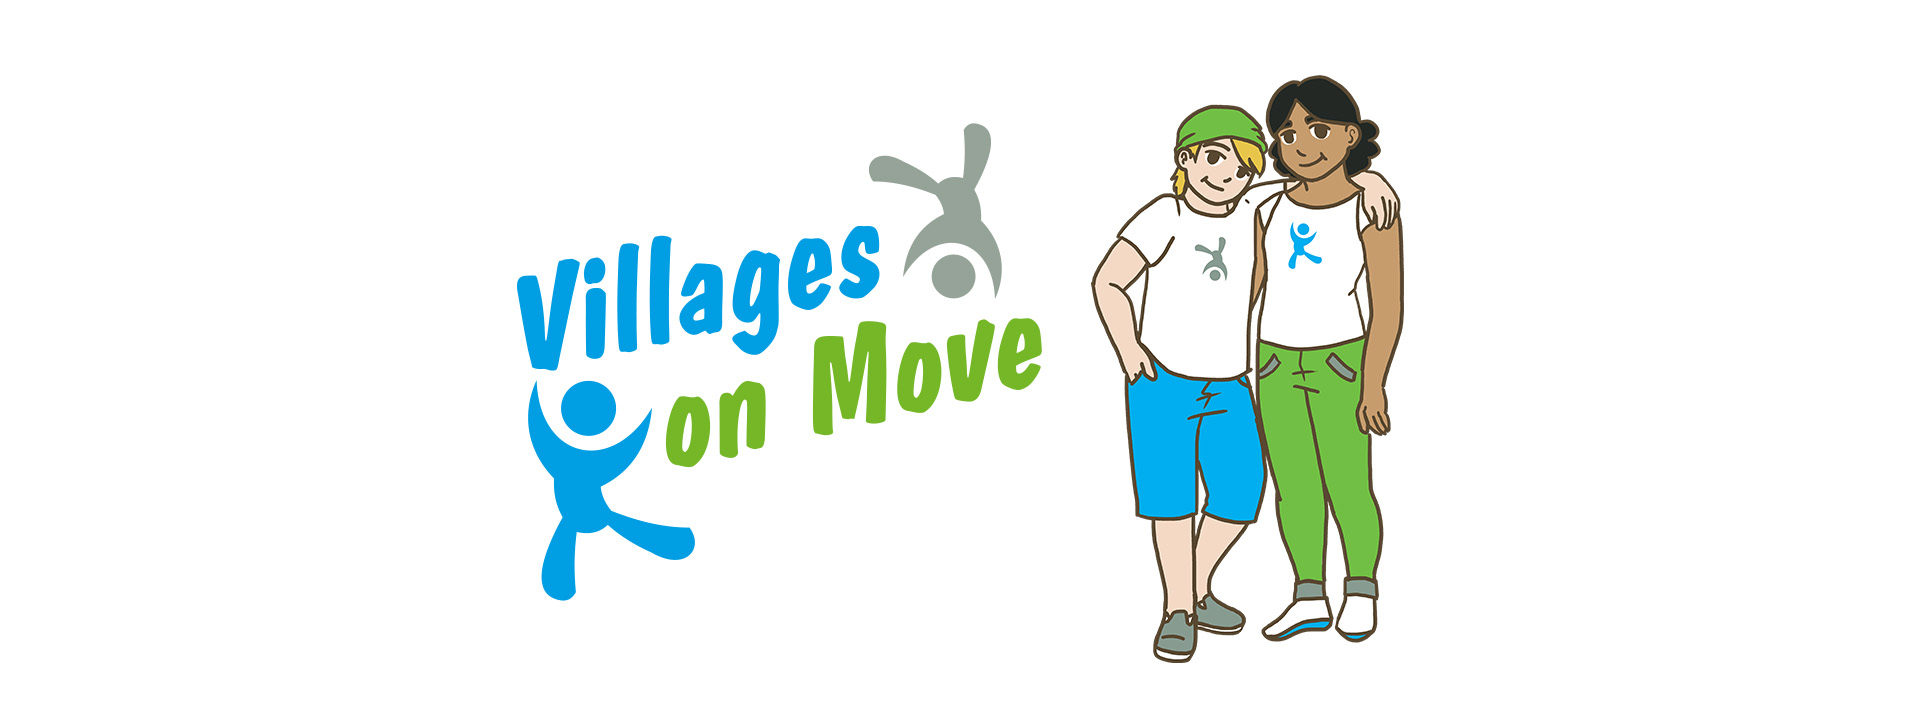 Villages on Move